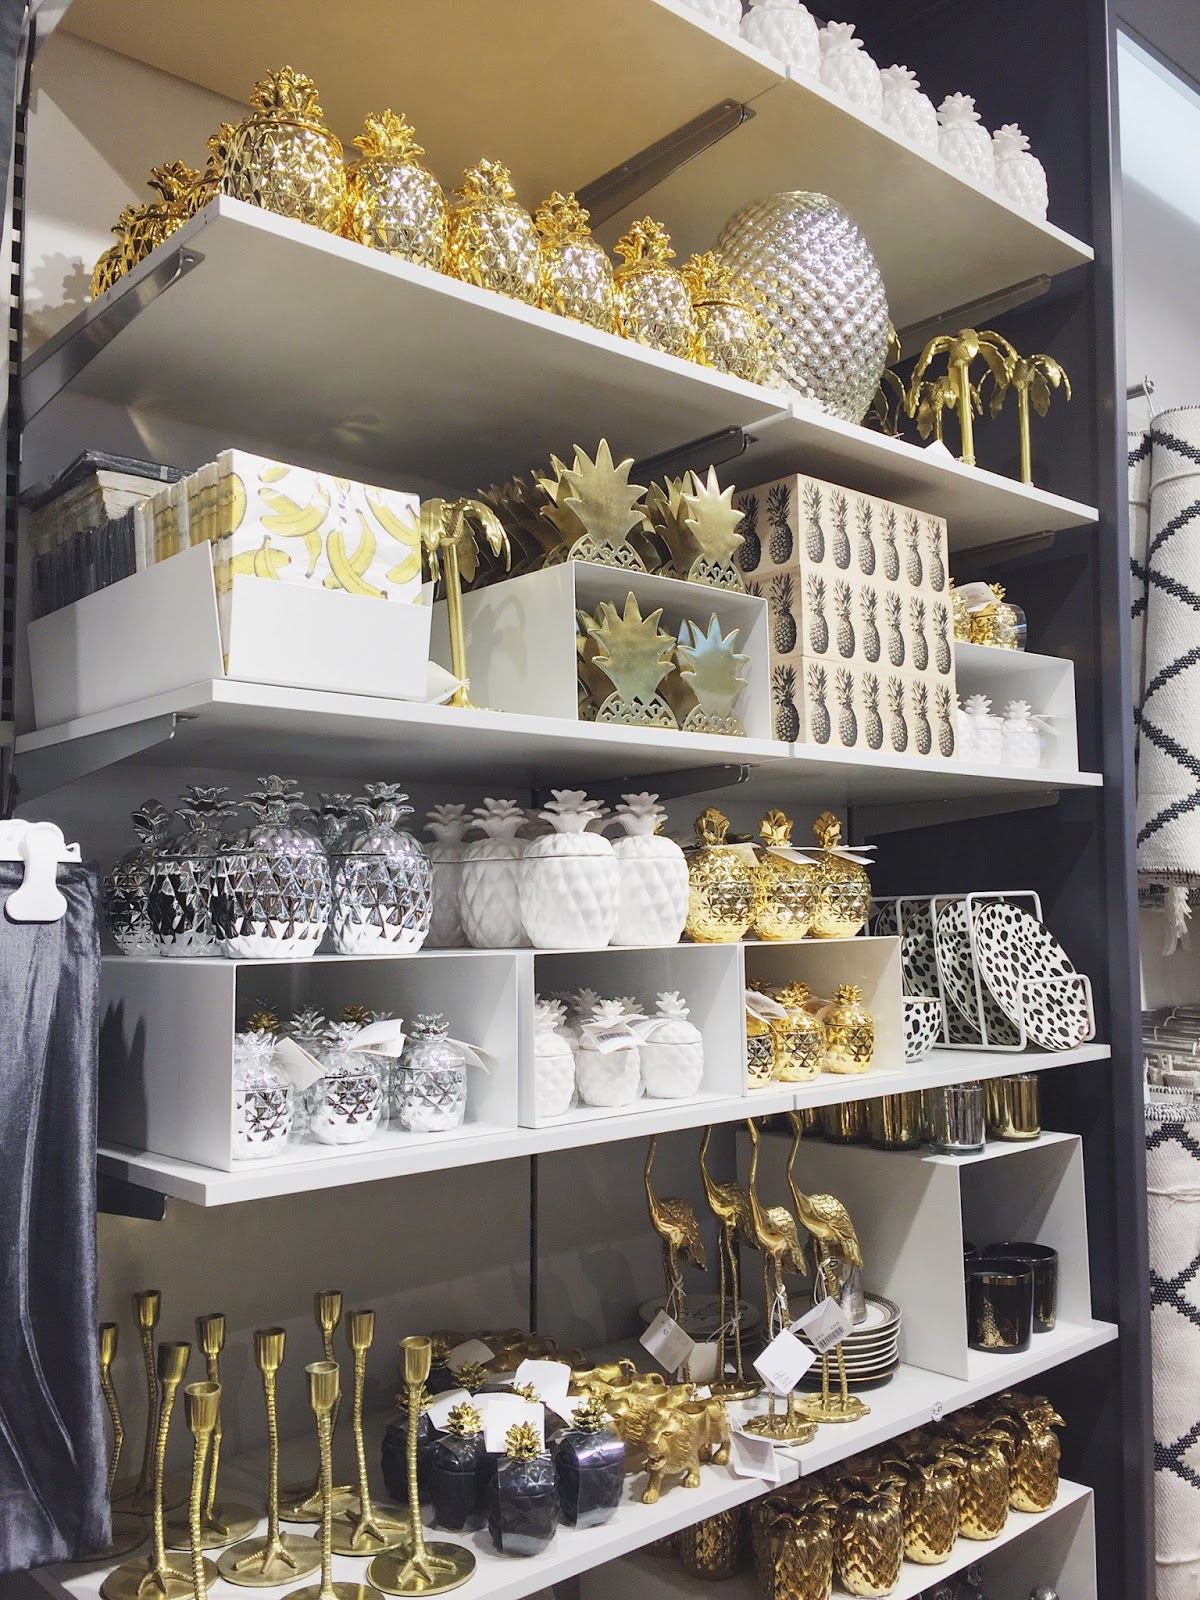 Pinapple Decor, Pineapples, Pineapple Interiors, Pineapple Accessories, H&M Home, H&M, Wolverhampton, Shop Display, Blogs, katiewrites, Katie Brown, Katie Writes, Katie,